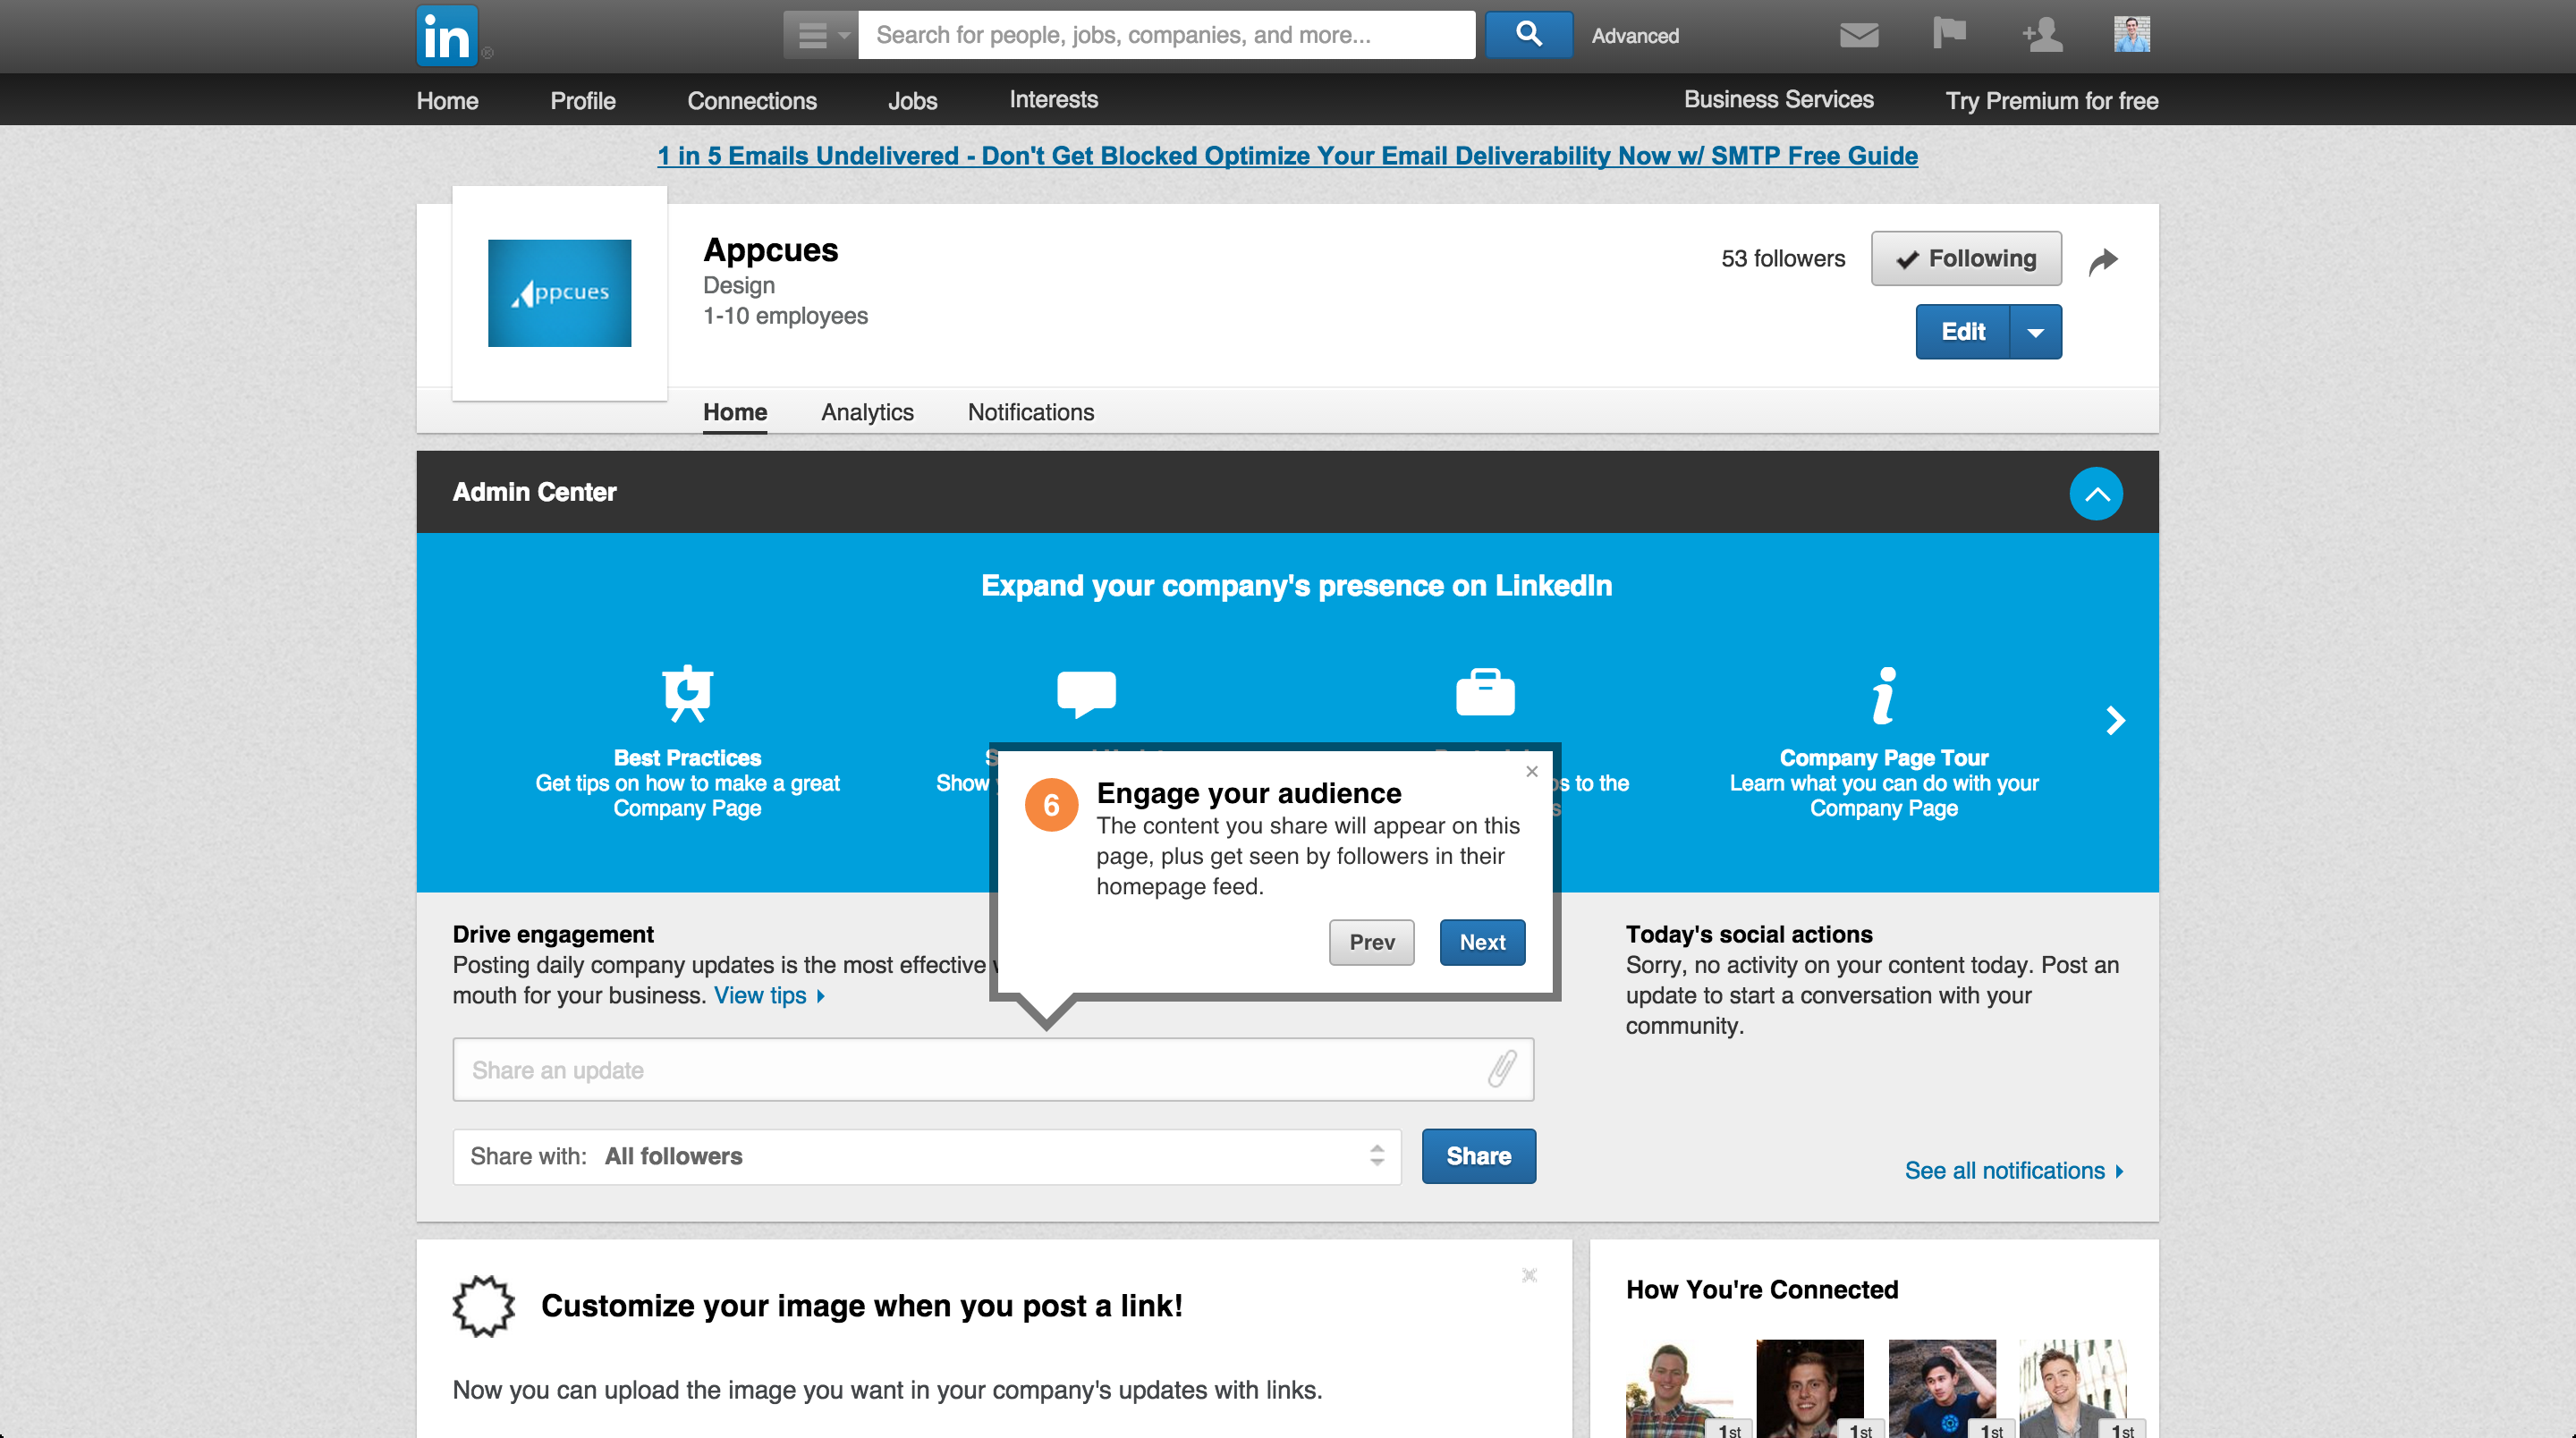 LinkedIn product tour company page 6